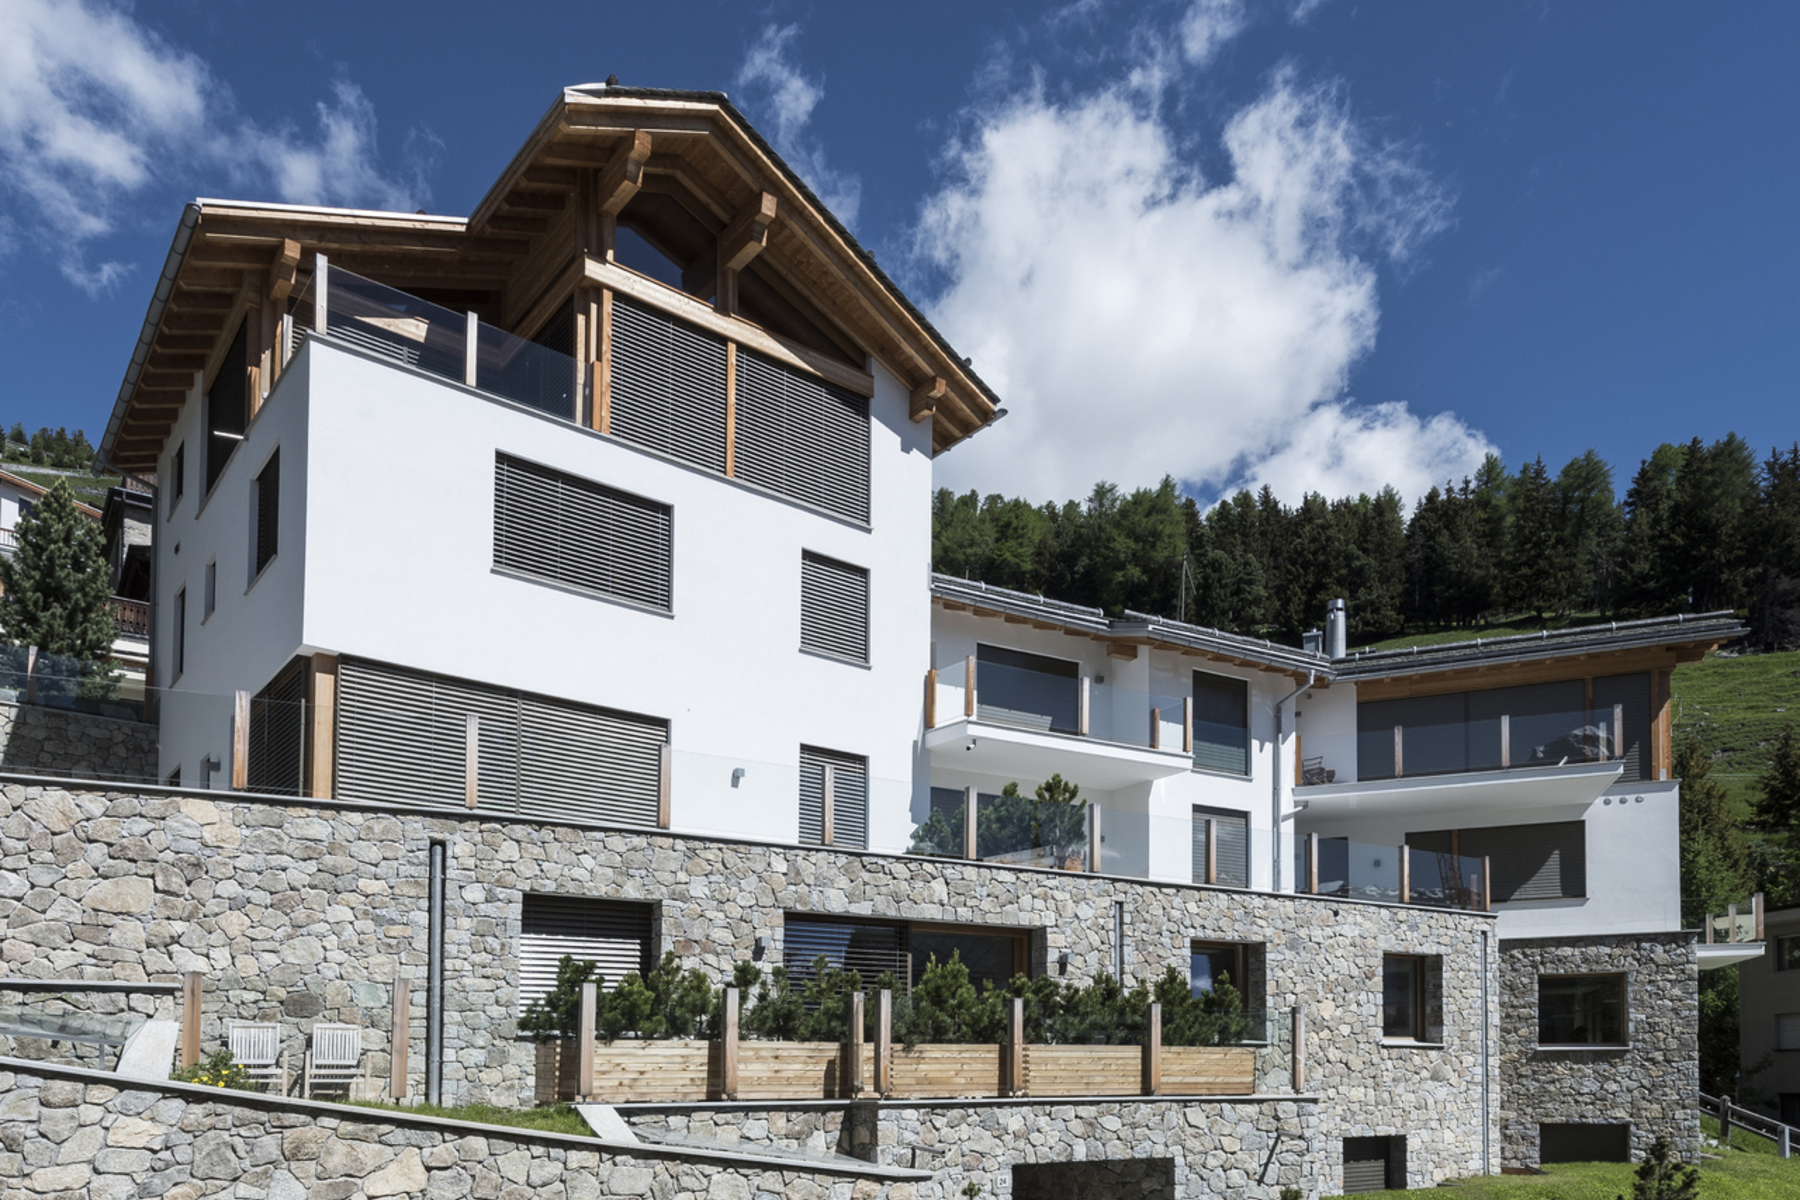 アパート のために 売買 アット New 6.5. Apartment / Villetta in a prime location with lake view St. Moritz St. Moritz, Grisons, 7500 スイス